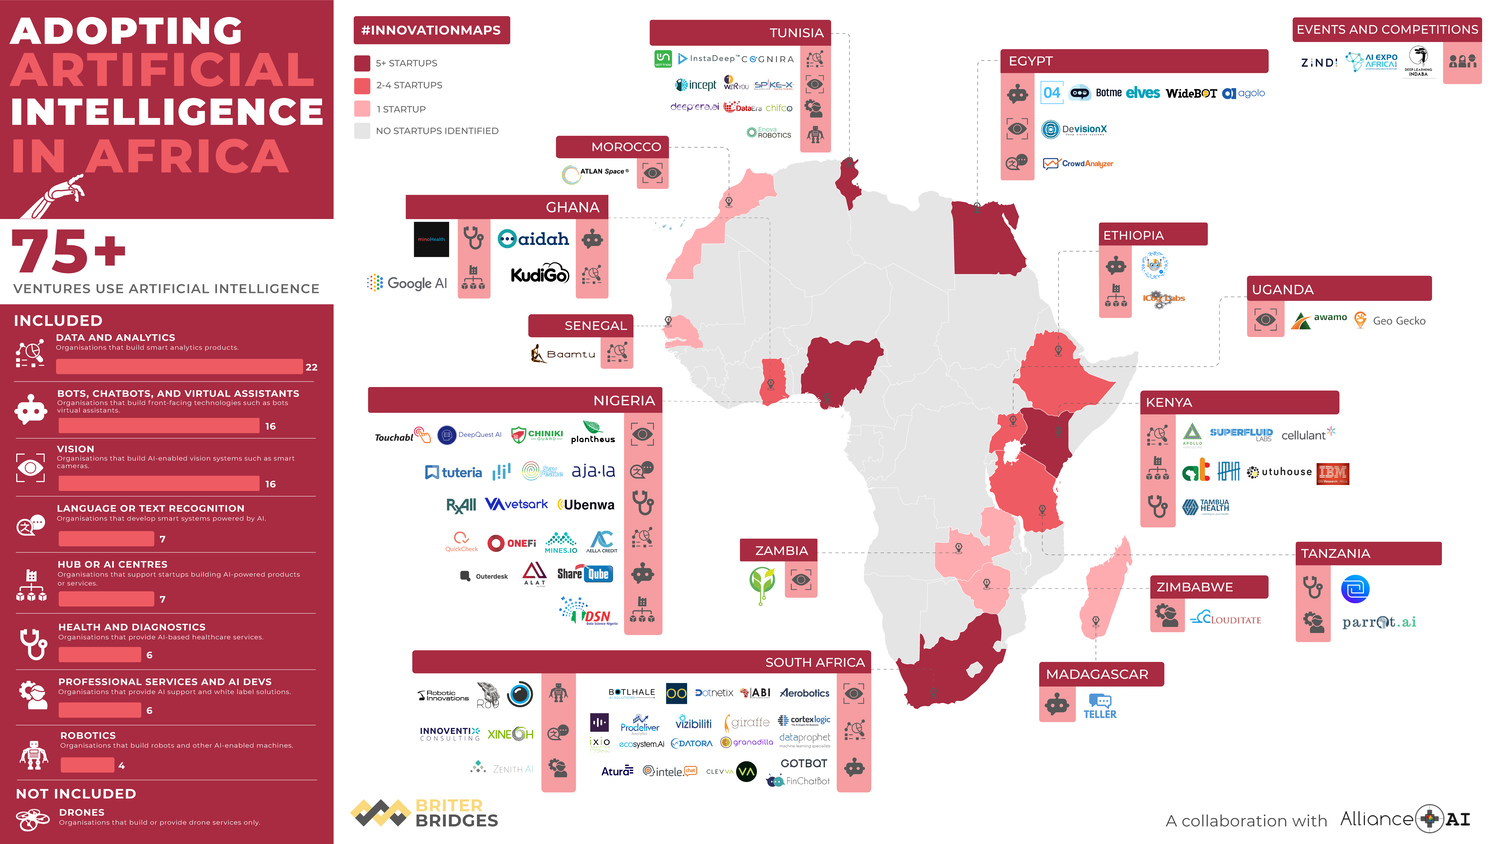 Artificial Intelligence Startups africa